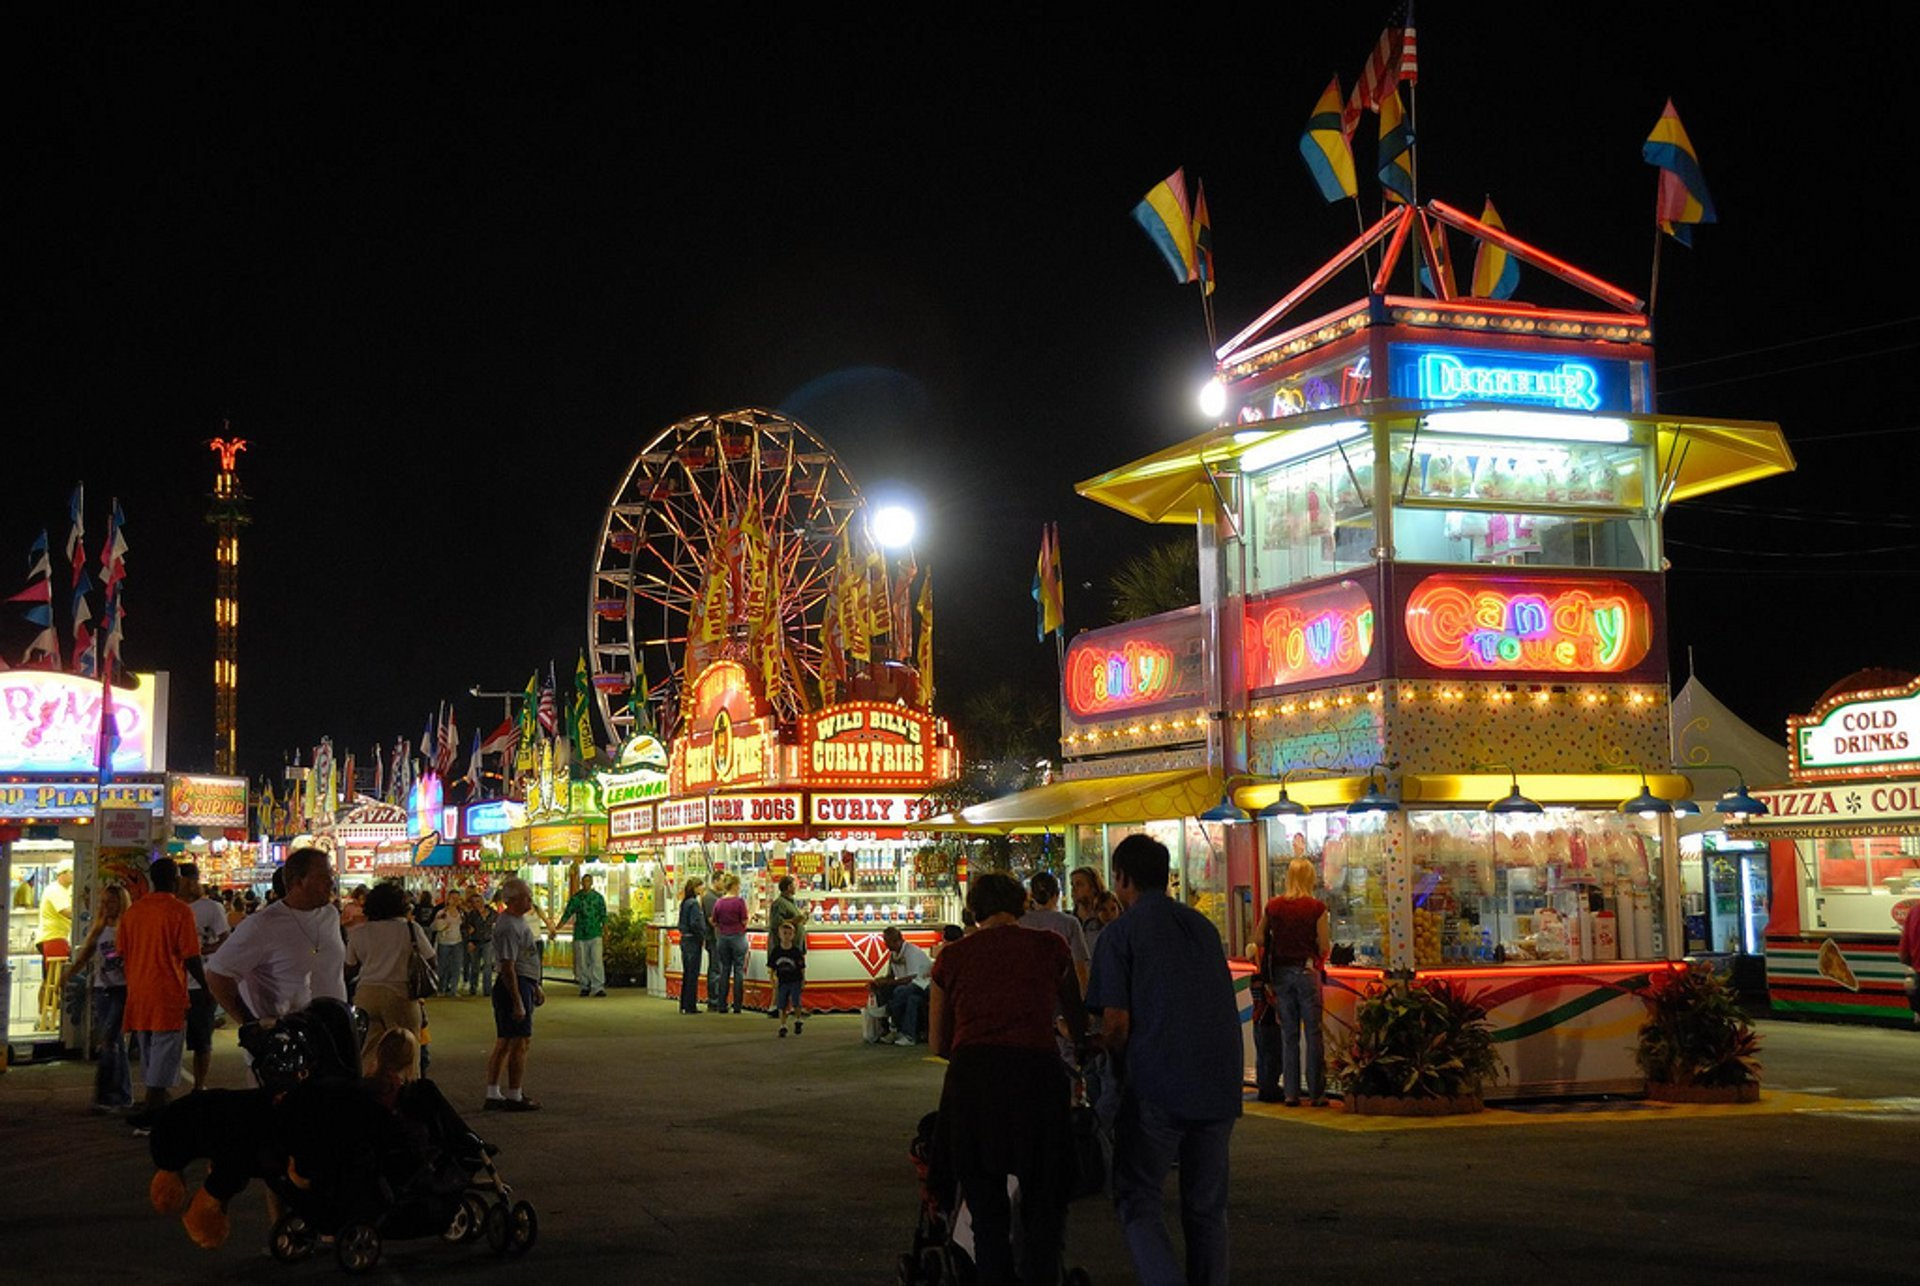 South Florida Fair 2021 - Dates & Map With South Florida Fair 2021